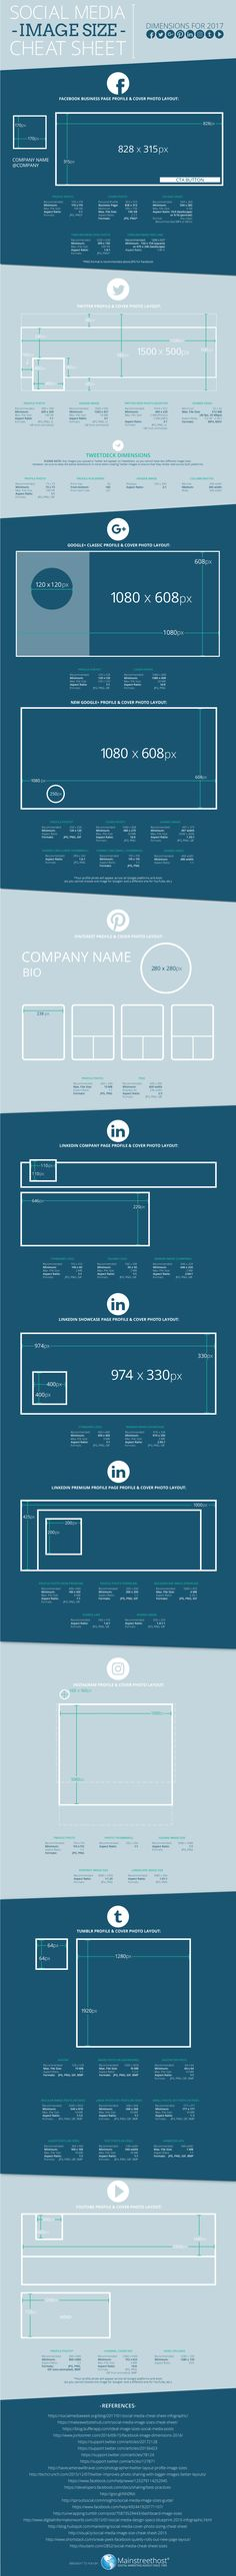 We understand you're busy. That's why we decided to create this helpful cheat sheet that has all of the 2017 social media image dimensions in one place!